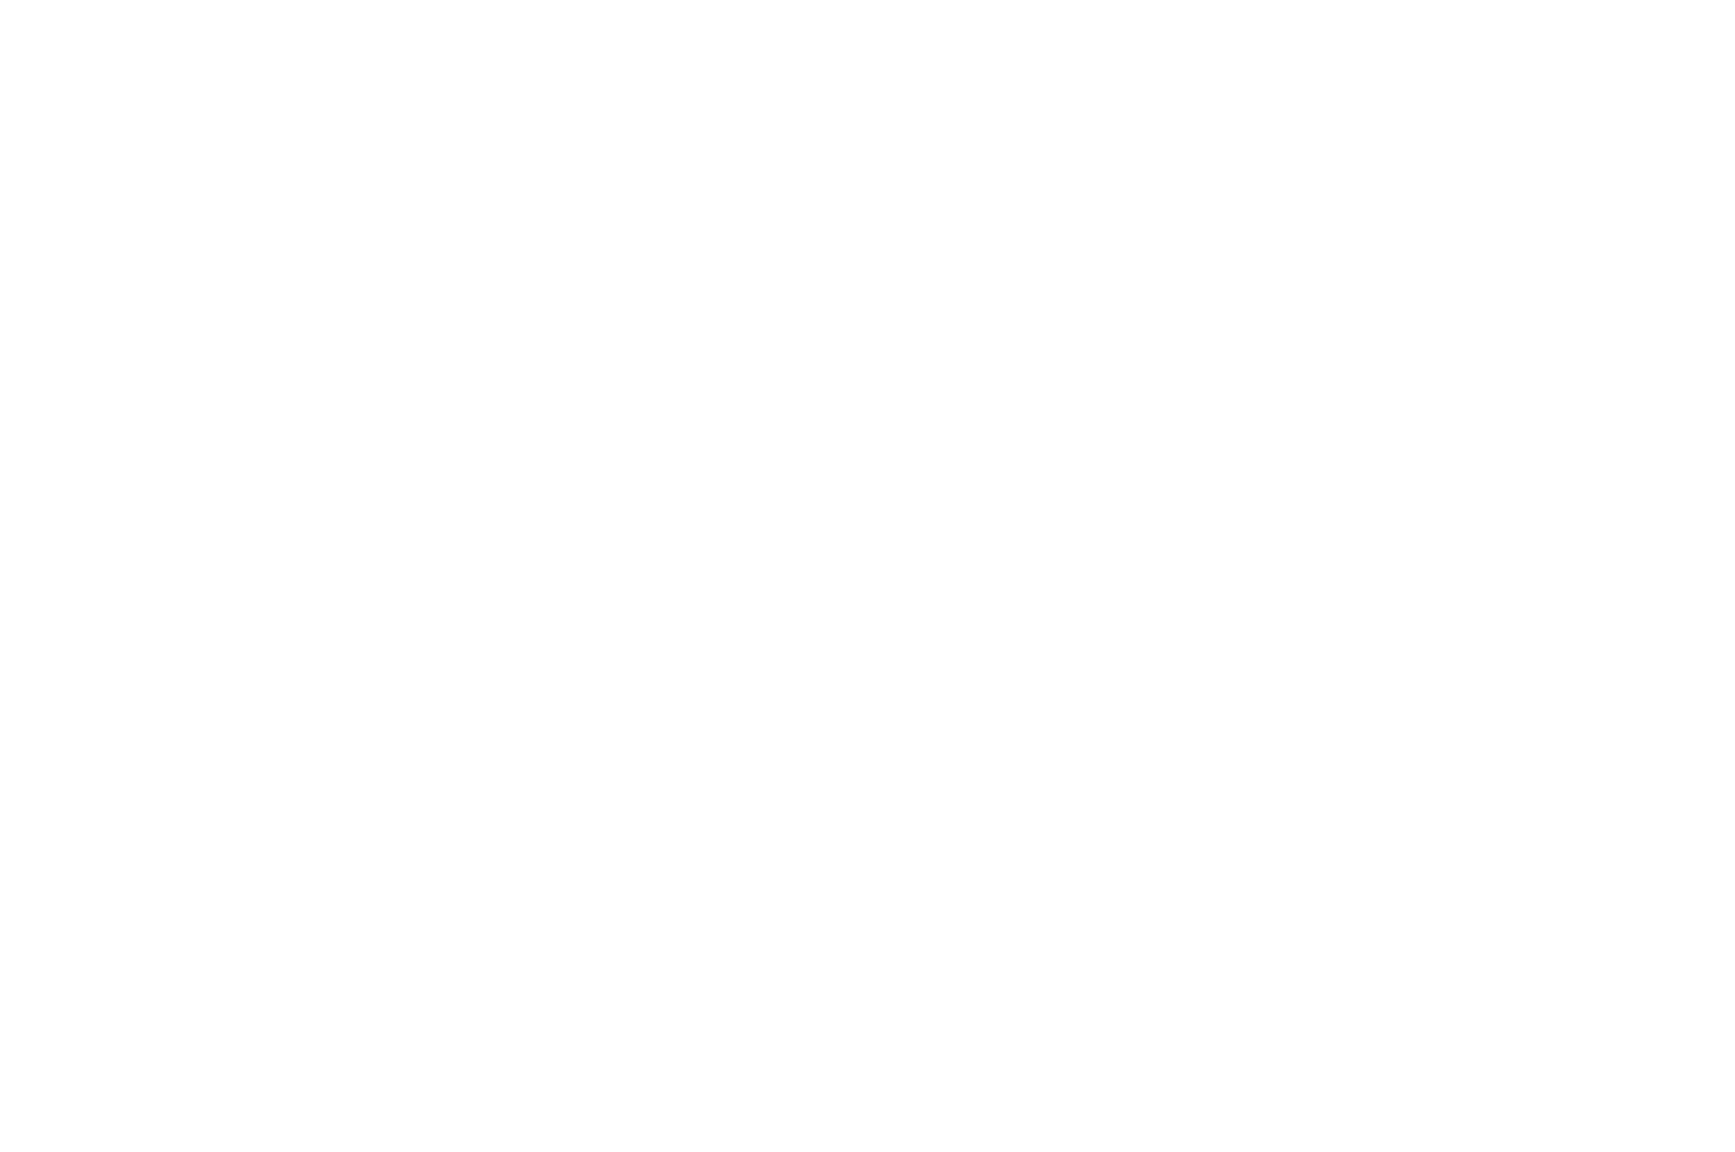 OFFICIAL SELECTION - IndieWise Virtual Festival - 2016